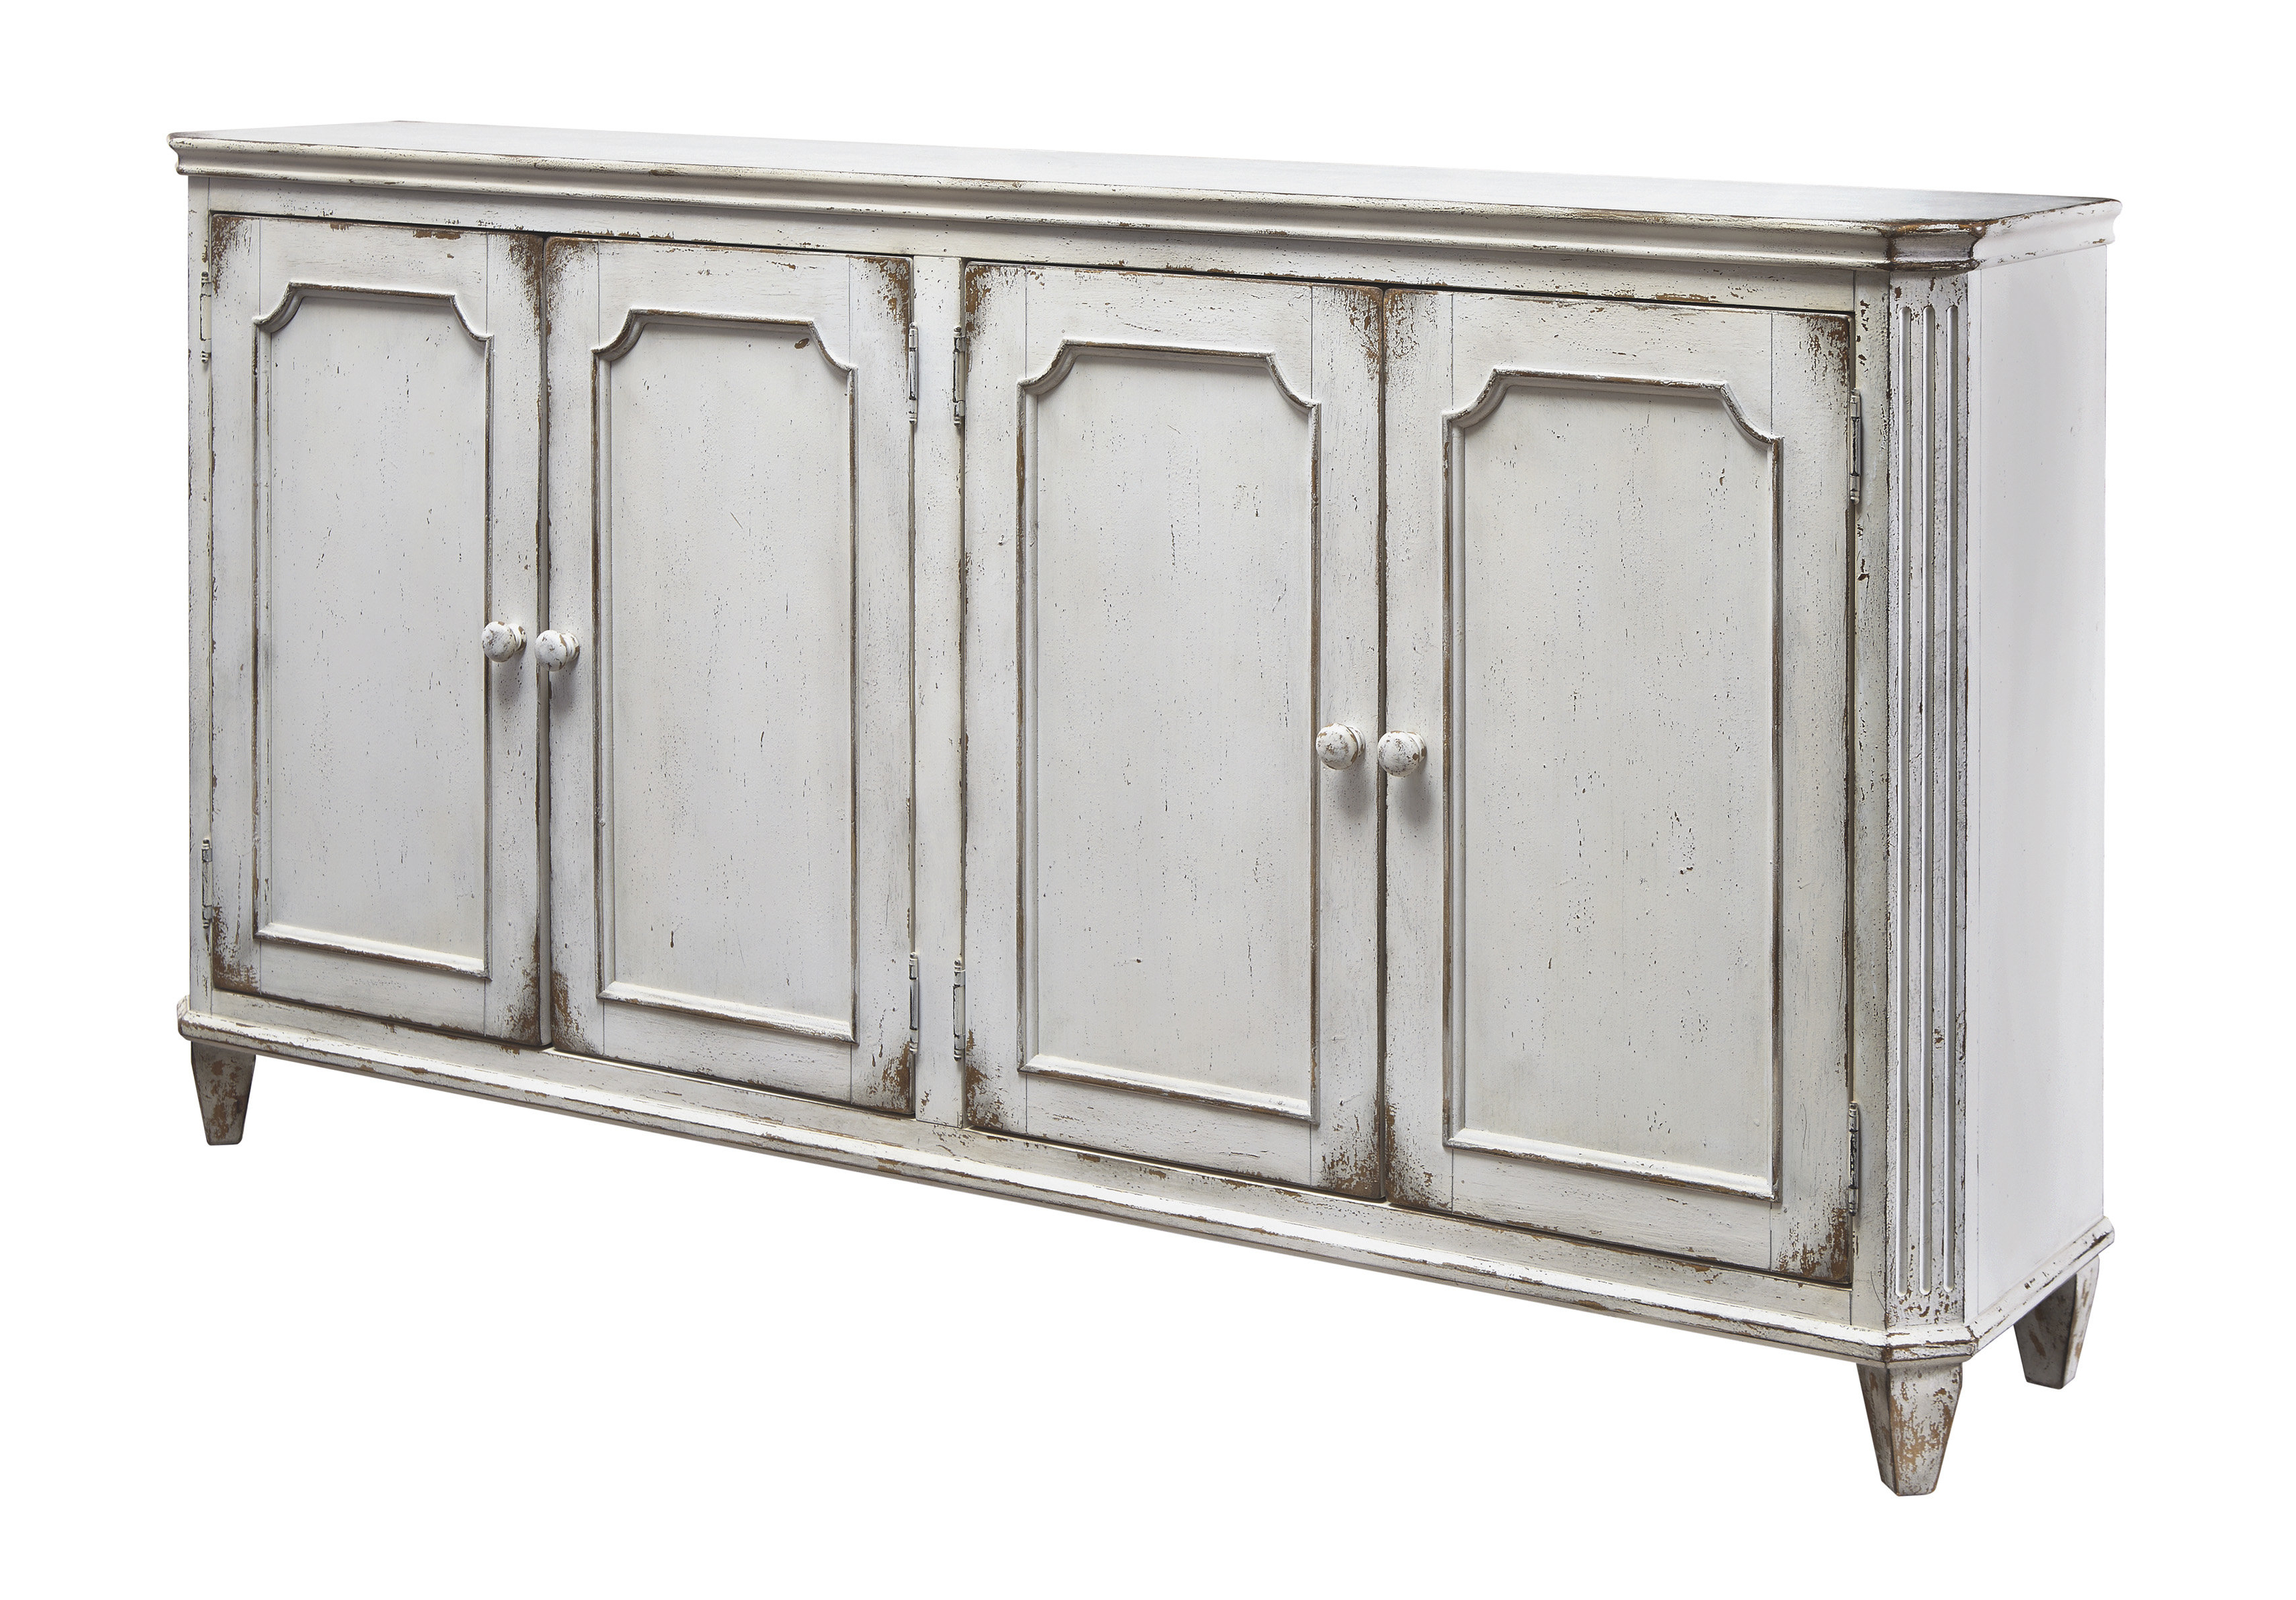 Deville Russelle Sideboards Throughout 2020 Nilles 4 Door Accent Cabinet & Reviews (View 8 of 20)